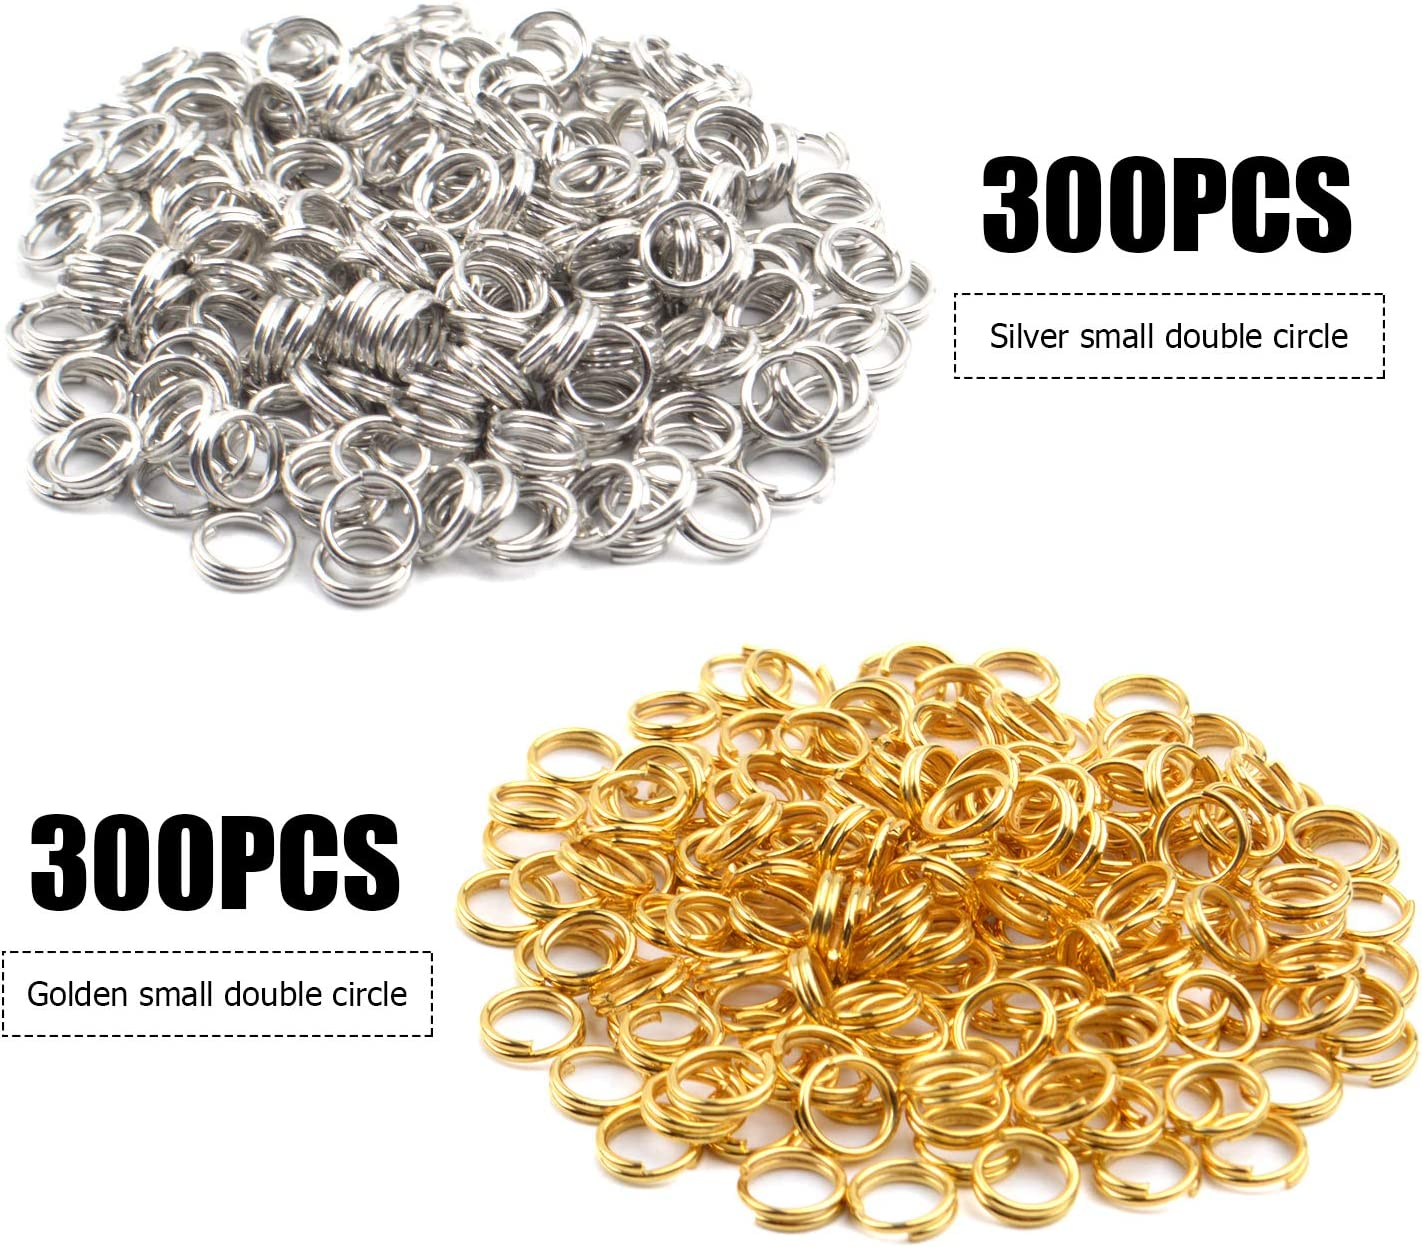 6 mm 600 Pcs Gold Plated Jump Rings Split Rings Circle Clasp Connecting Rings Jewelry Necklace Bracelet Pendant Choker Charm Loops DIY Craft Earring Making Supplies